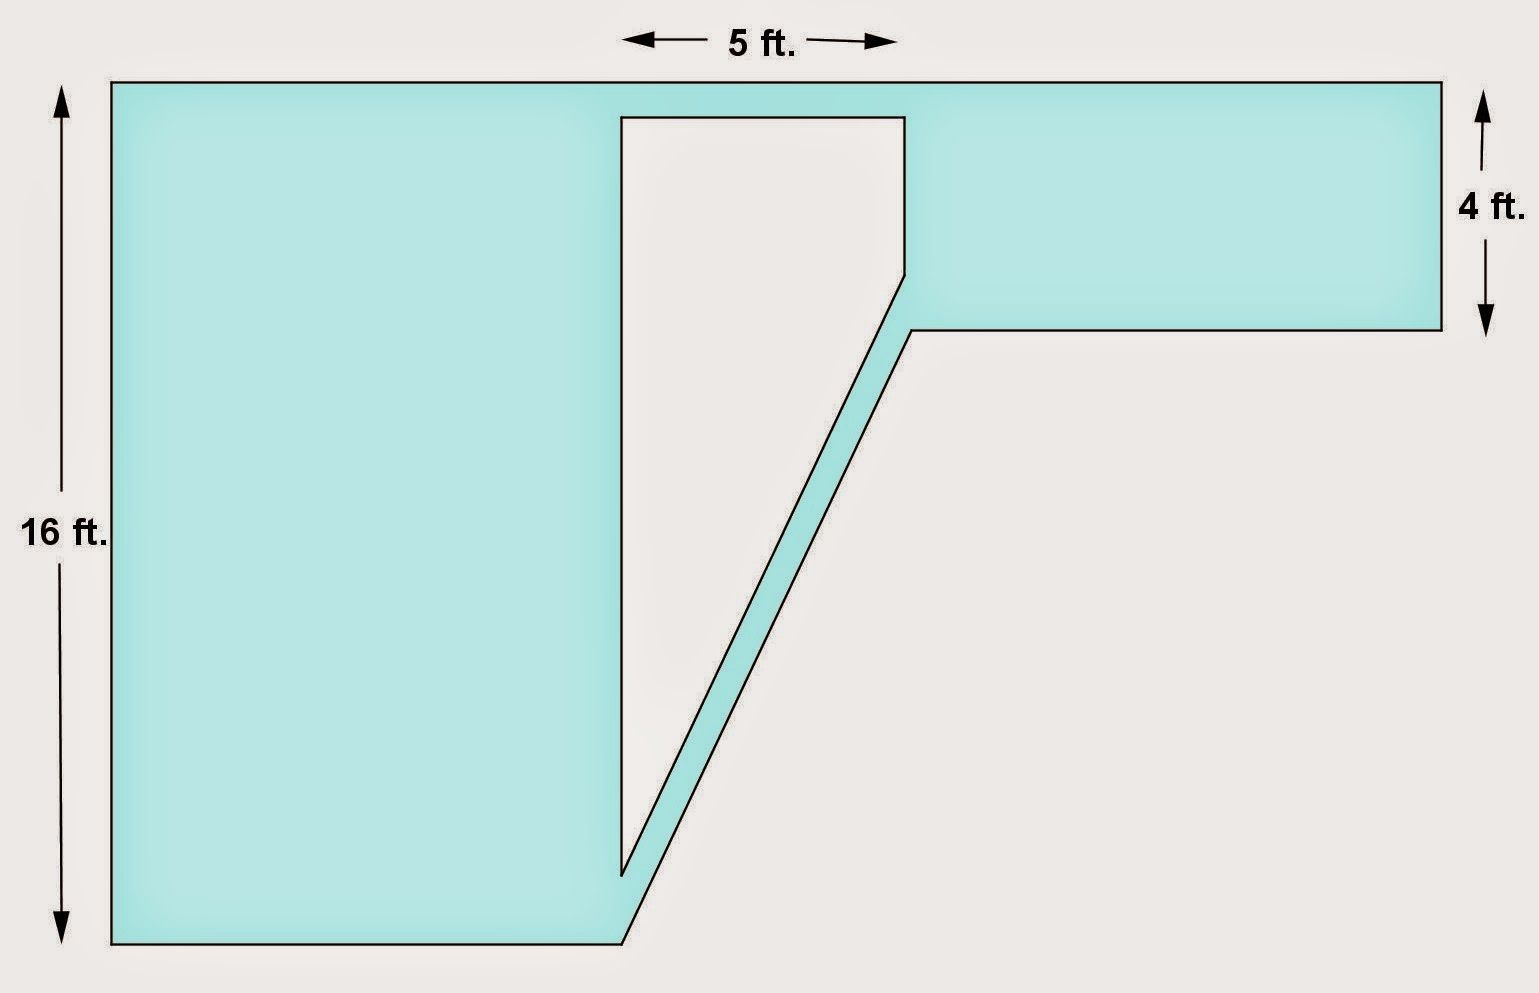 Circular Cylinder Problems 6 With Images